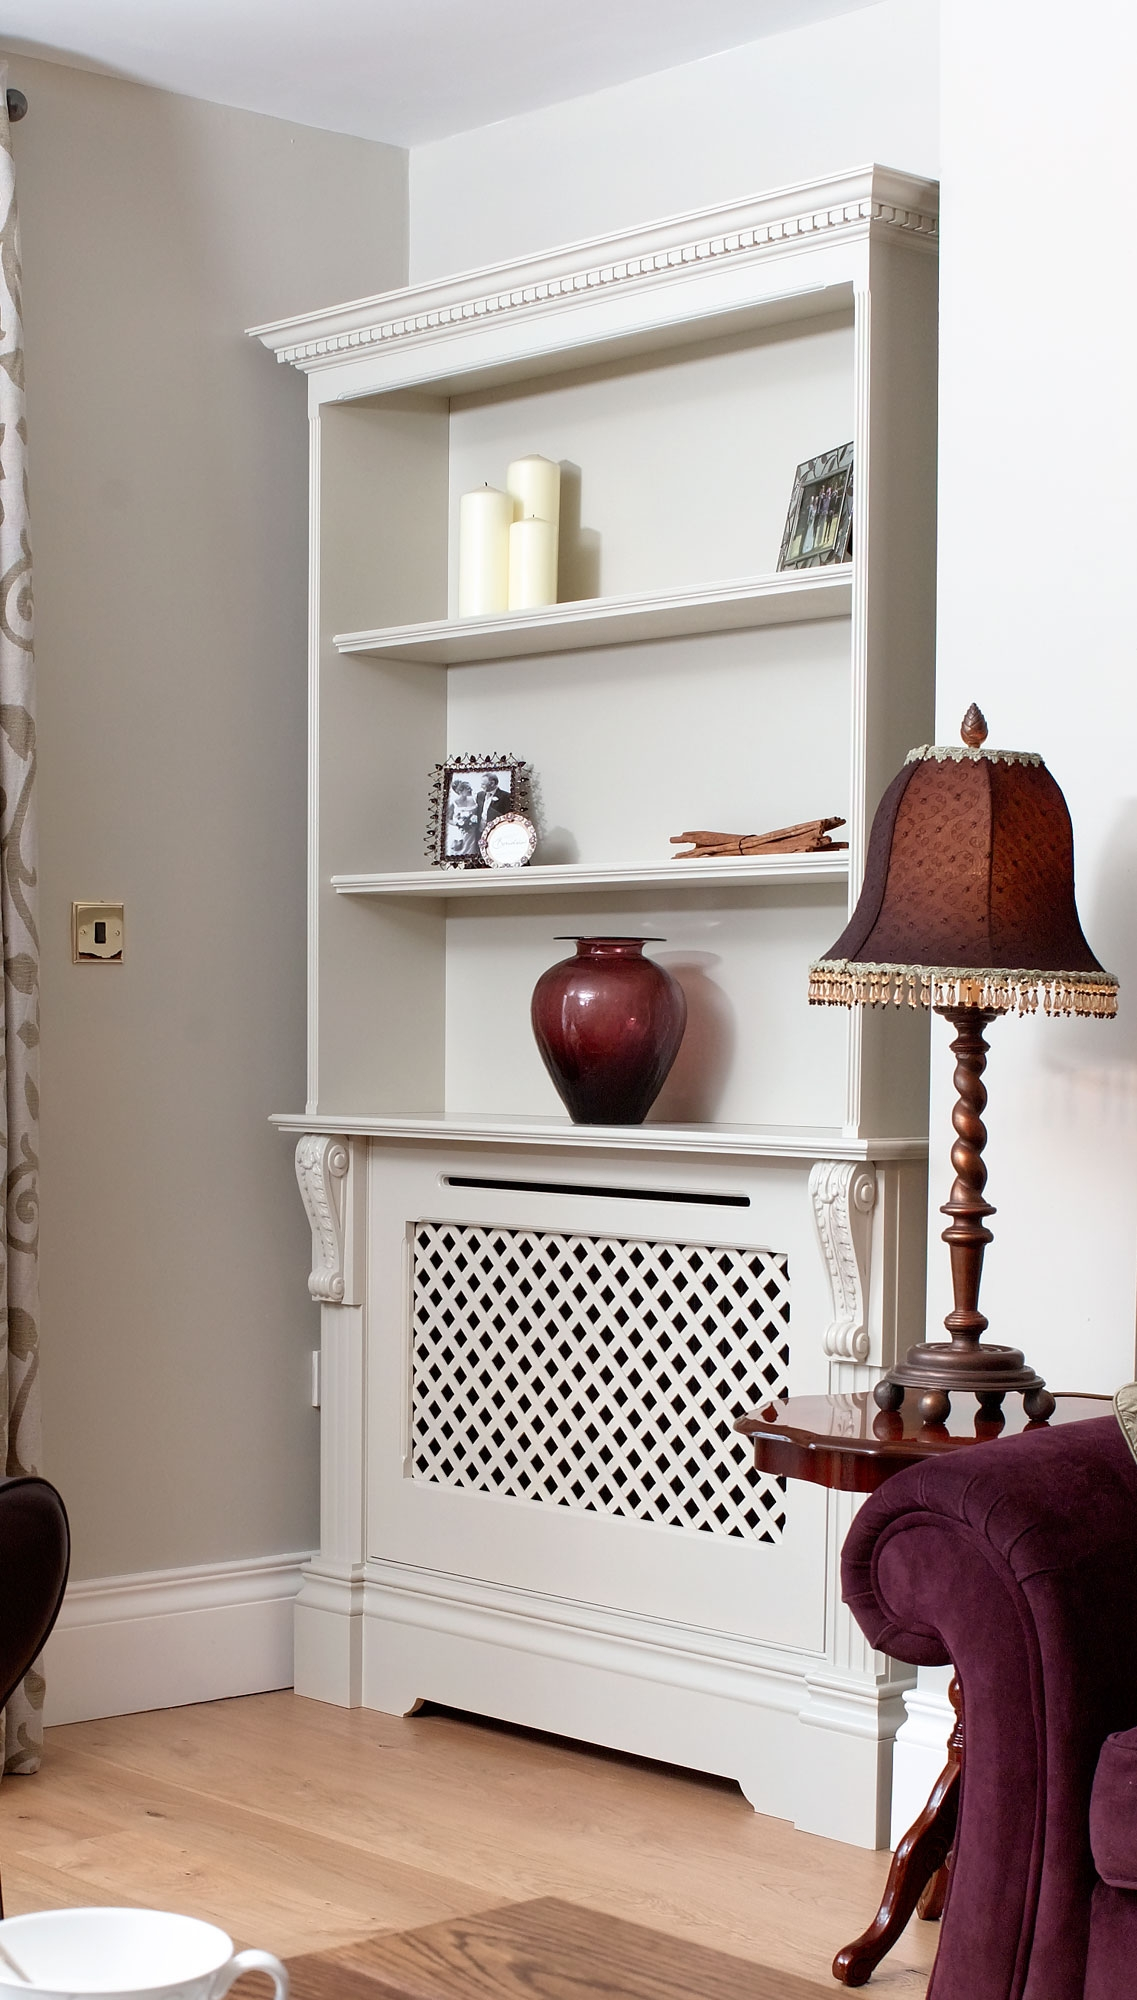 Popular Photo of Radiator Cover Bookshelf